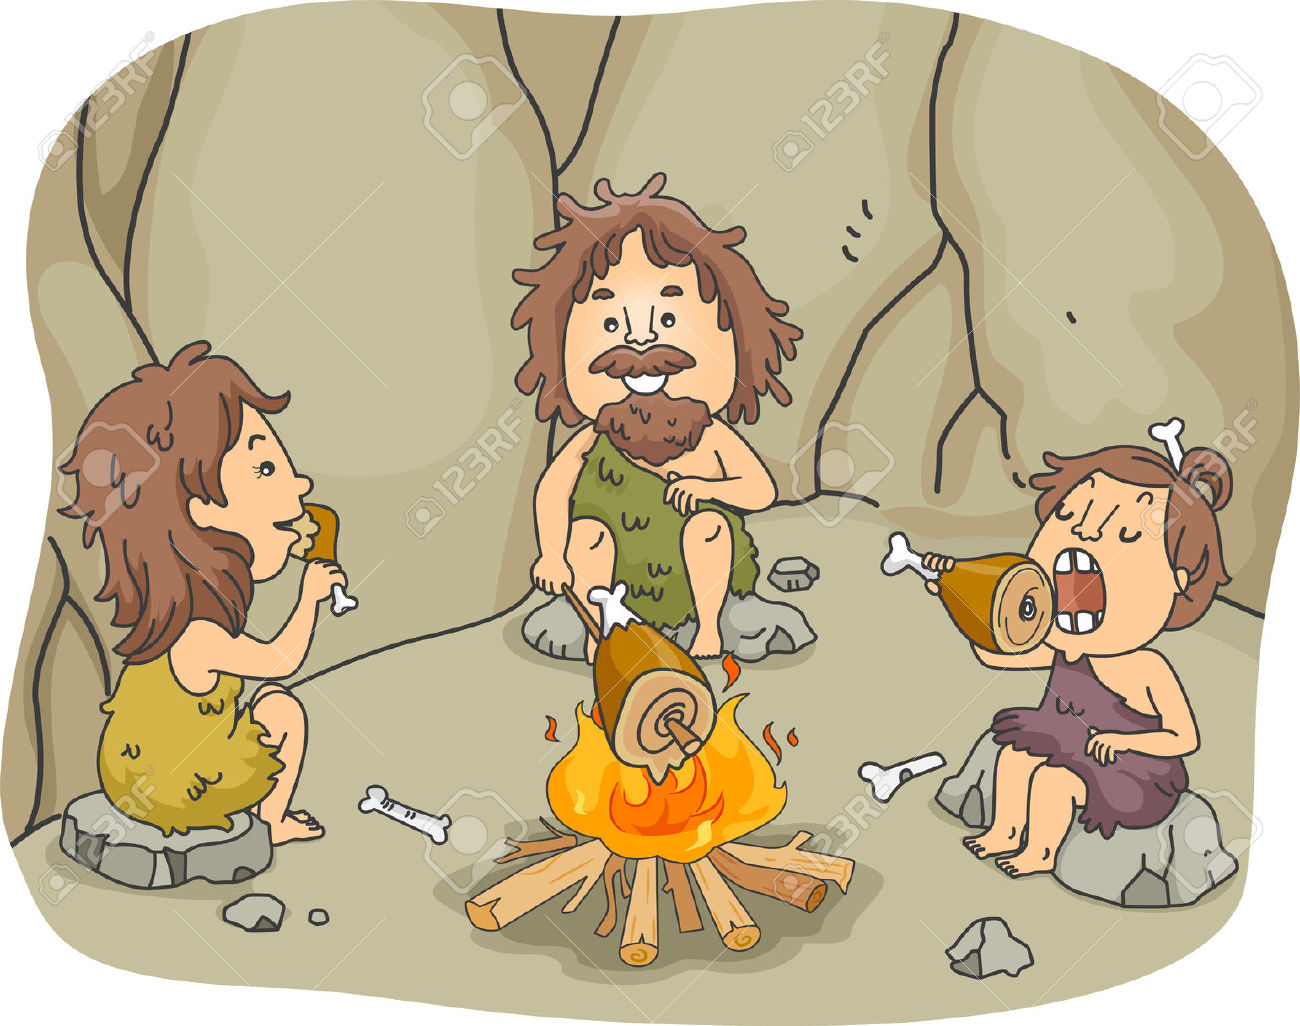 Illustration Of A Caveman Family Eating Chunks Of Meat Together.